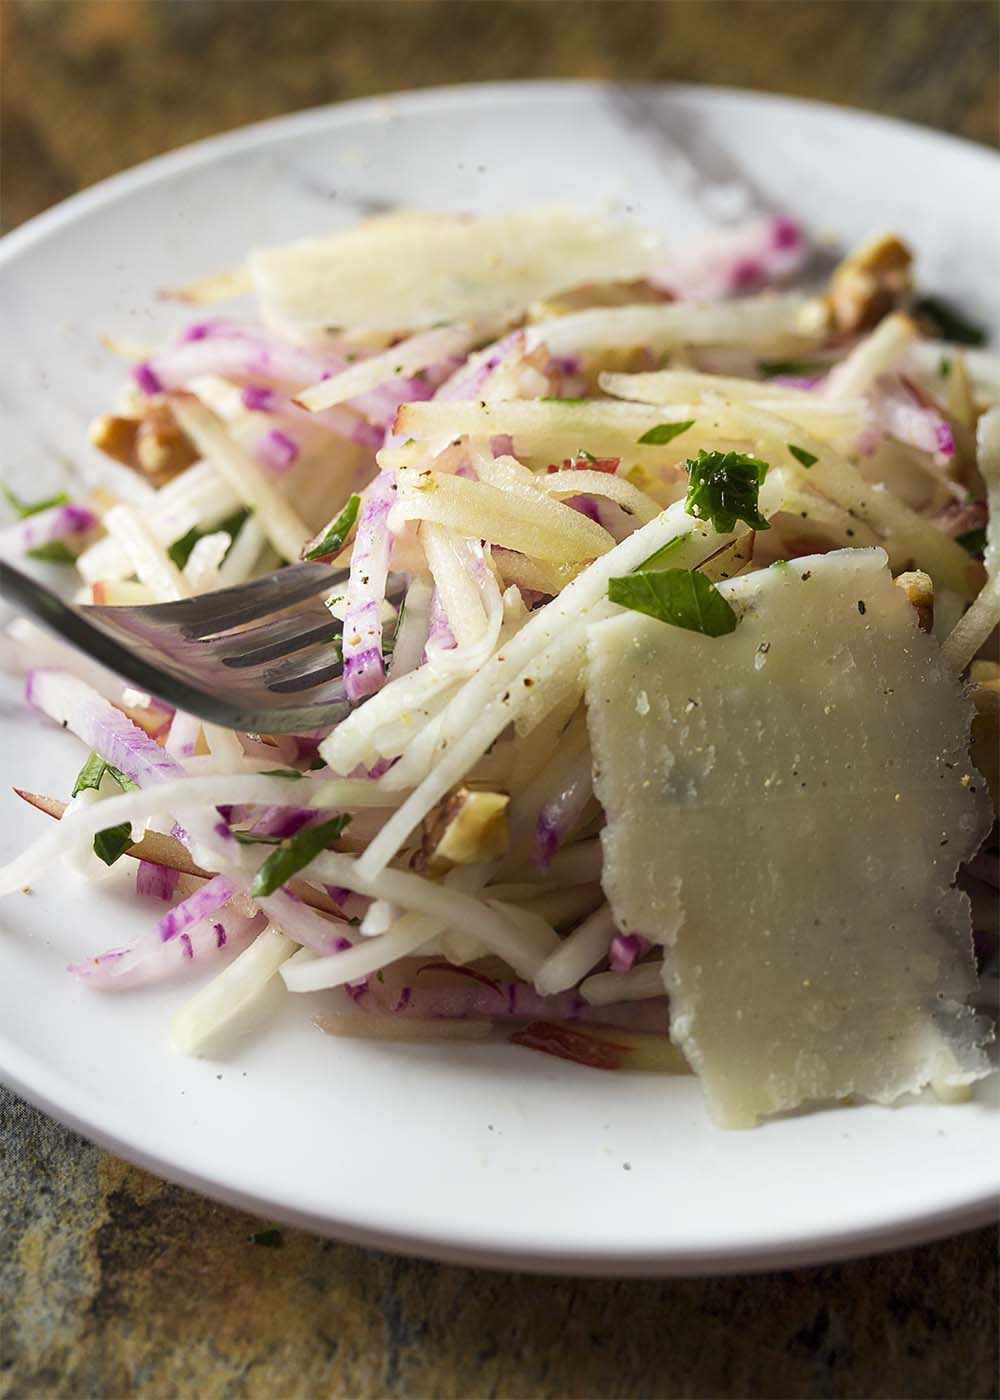 A fork picking up some of kohlrabi slaw from a small dinner plate.